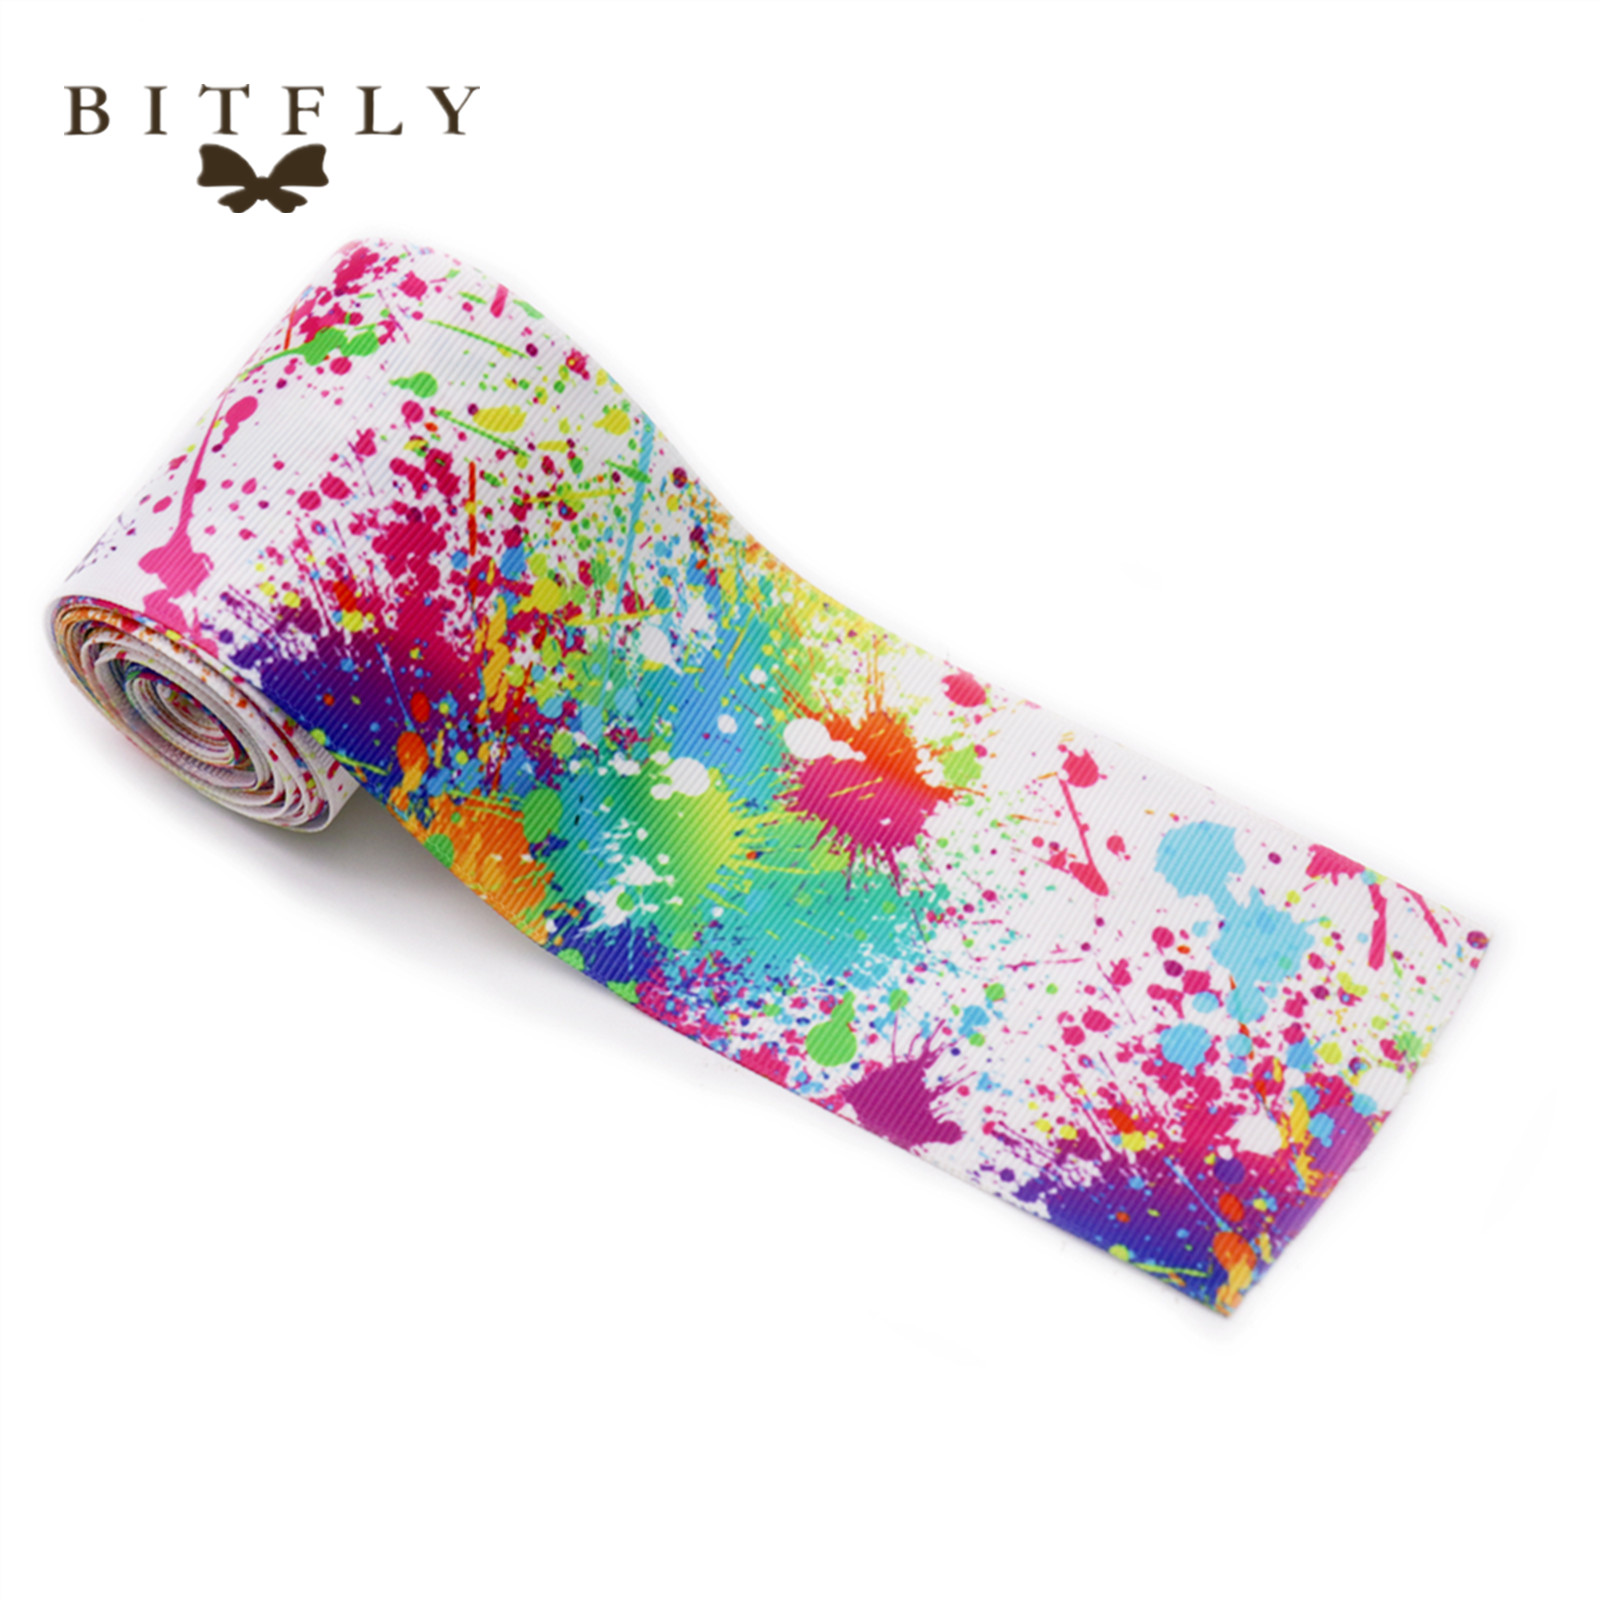 BIT.FLY 1yard 63mm Colorful Printed Grosgrain Ribbon Gift Wrapping DIY Hair Bows Wedding Birthday Party Decoration accessories